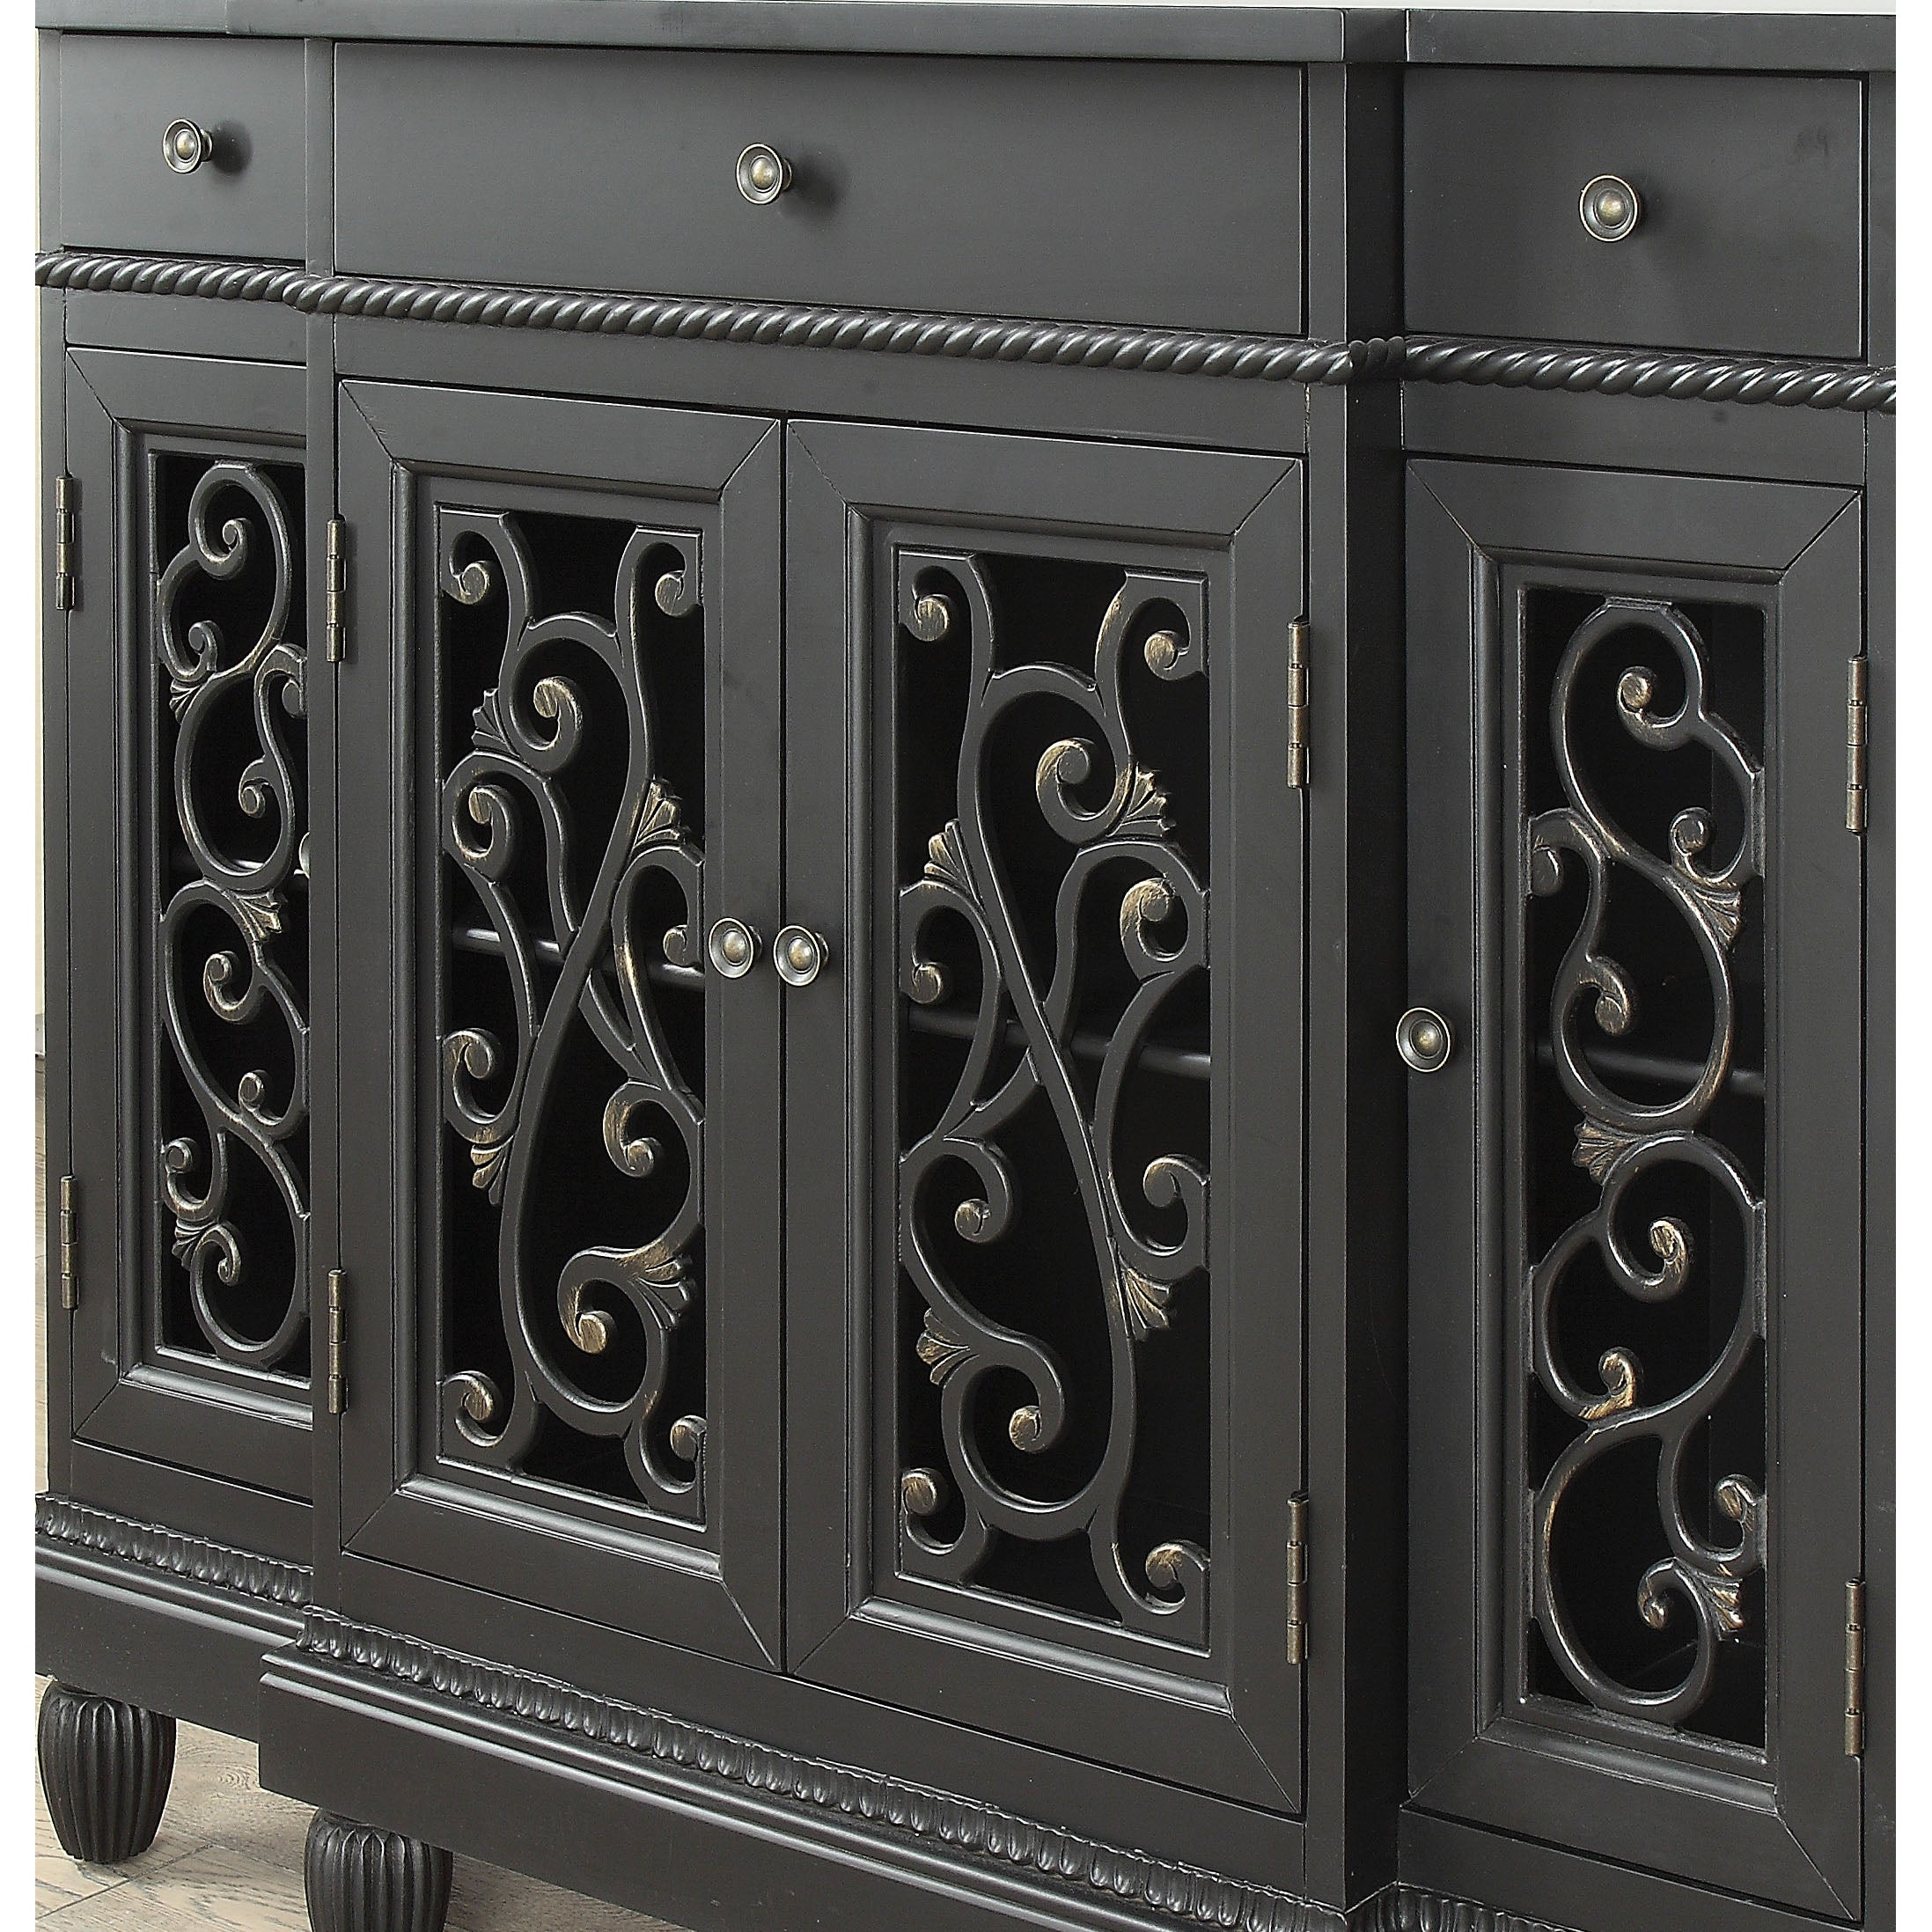 nextag prices vintage at reviews buy and cabinet metal cabinets glass compare